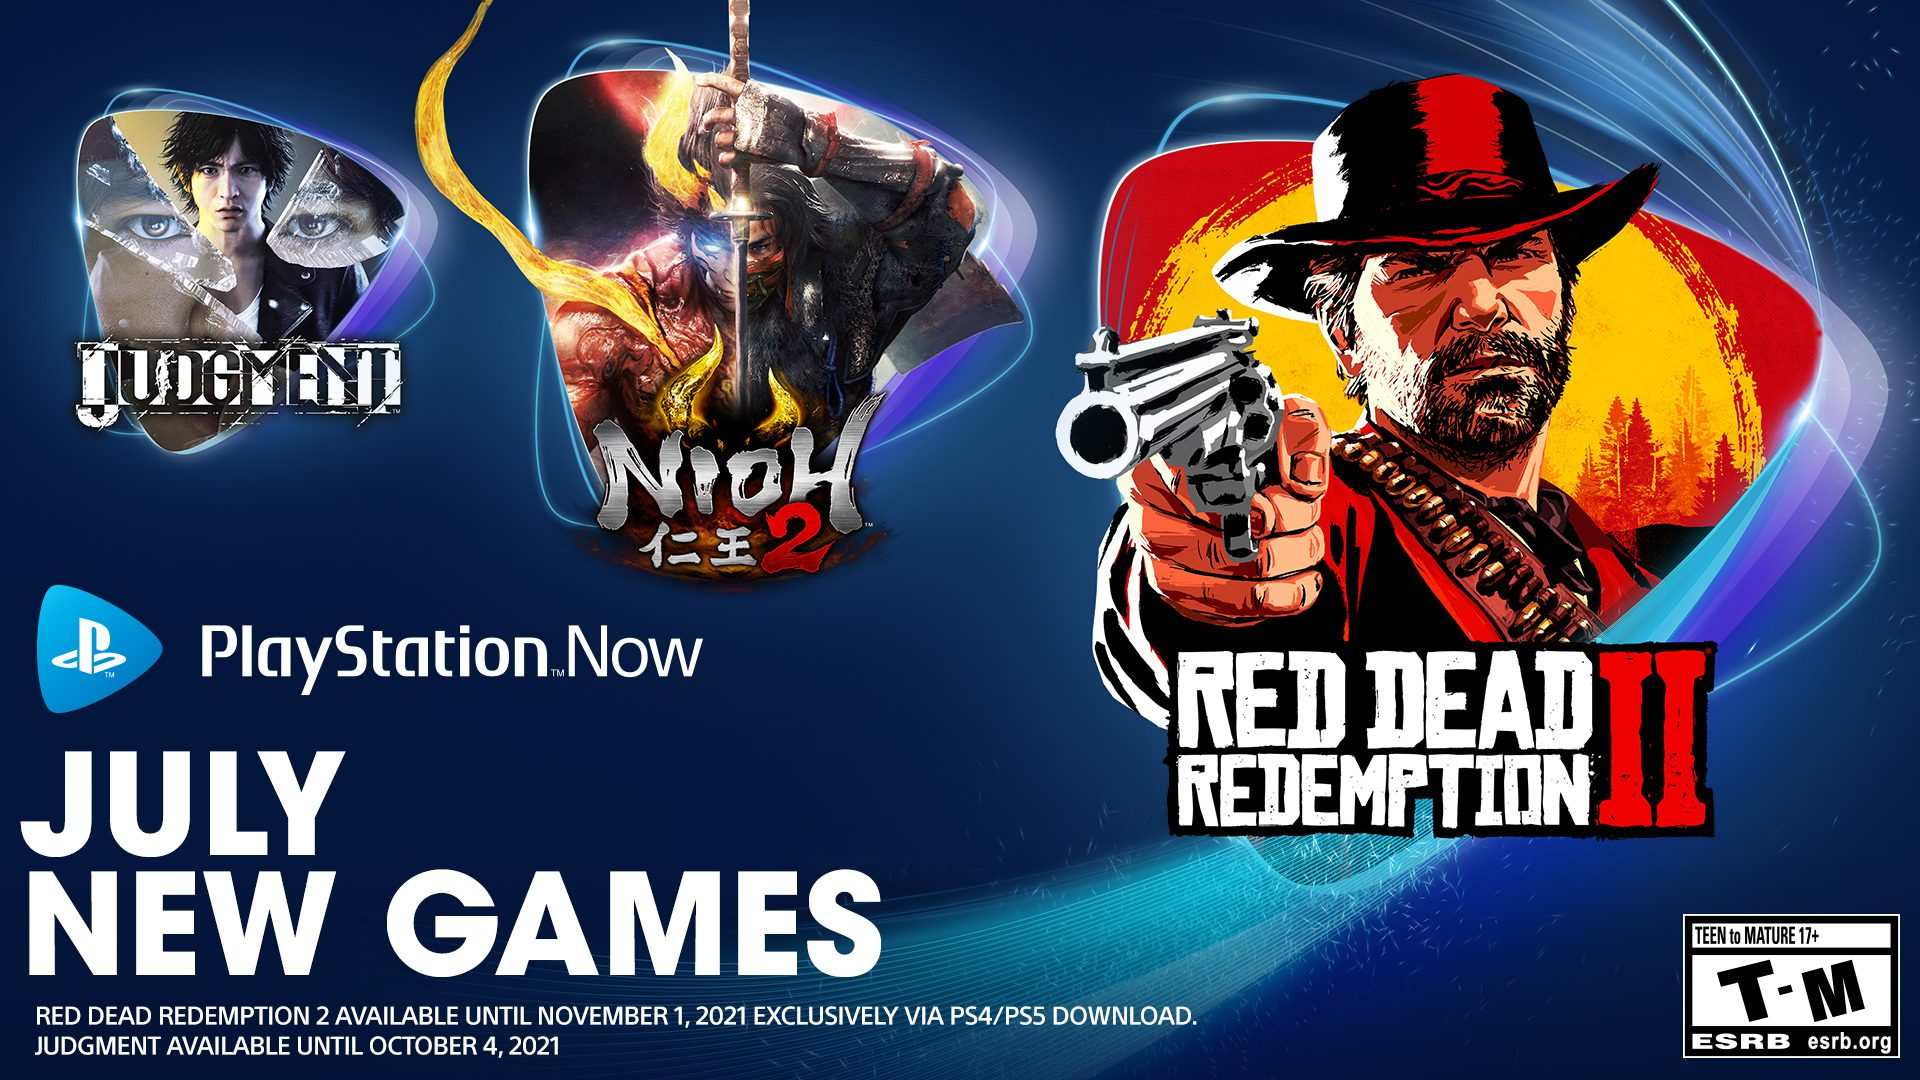 playstation-now-game-titles-for-july:-purple-dead-redemption-two,-nioh-2,-judgment